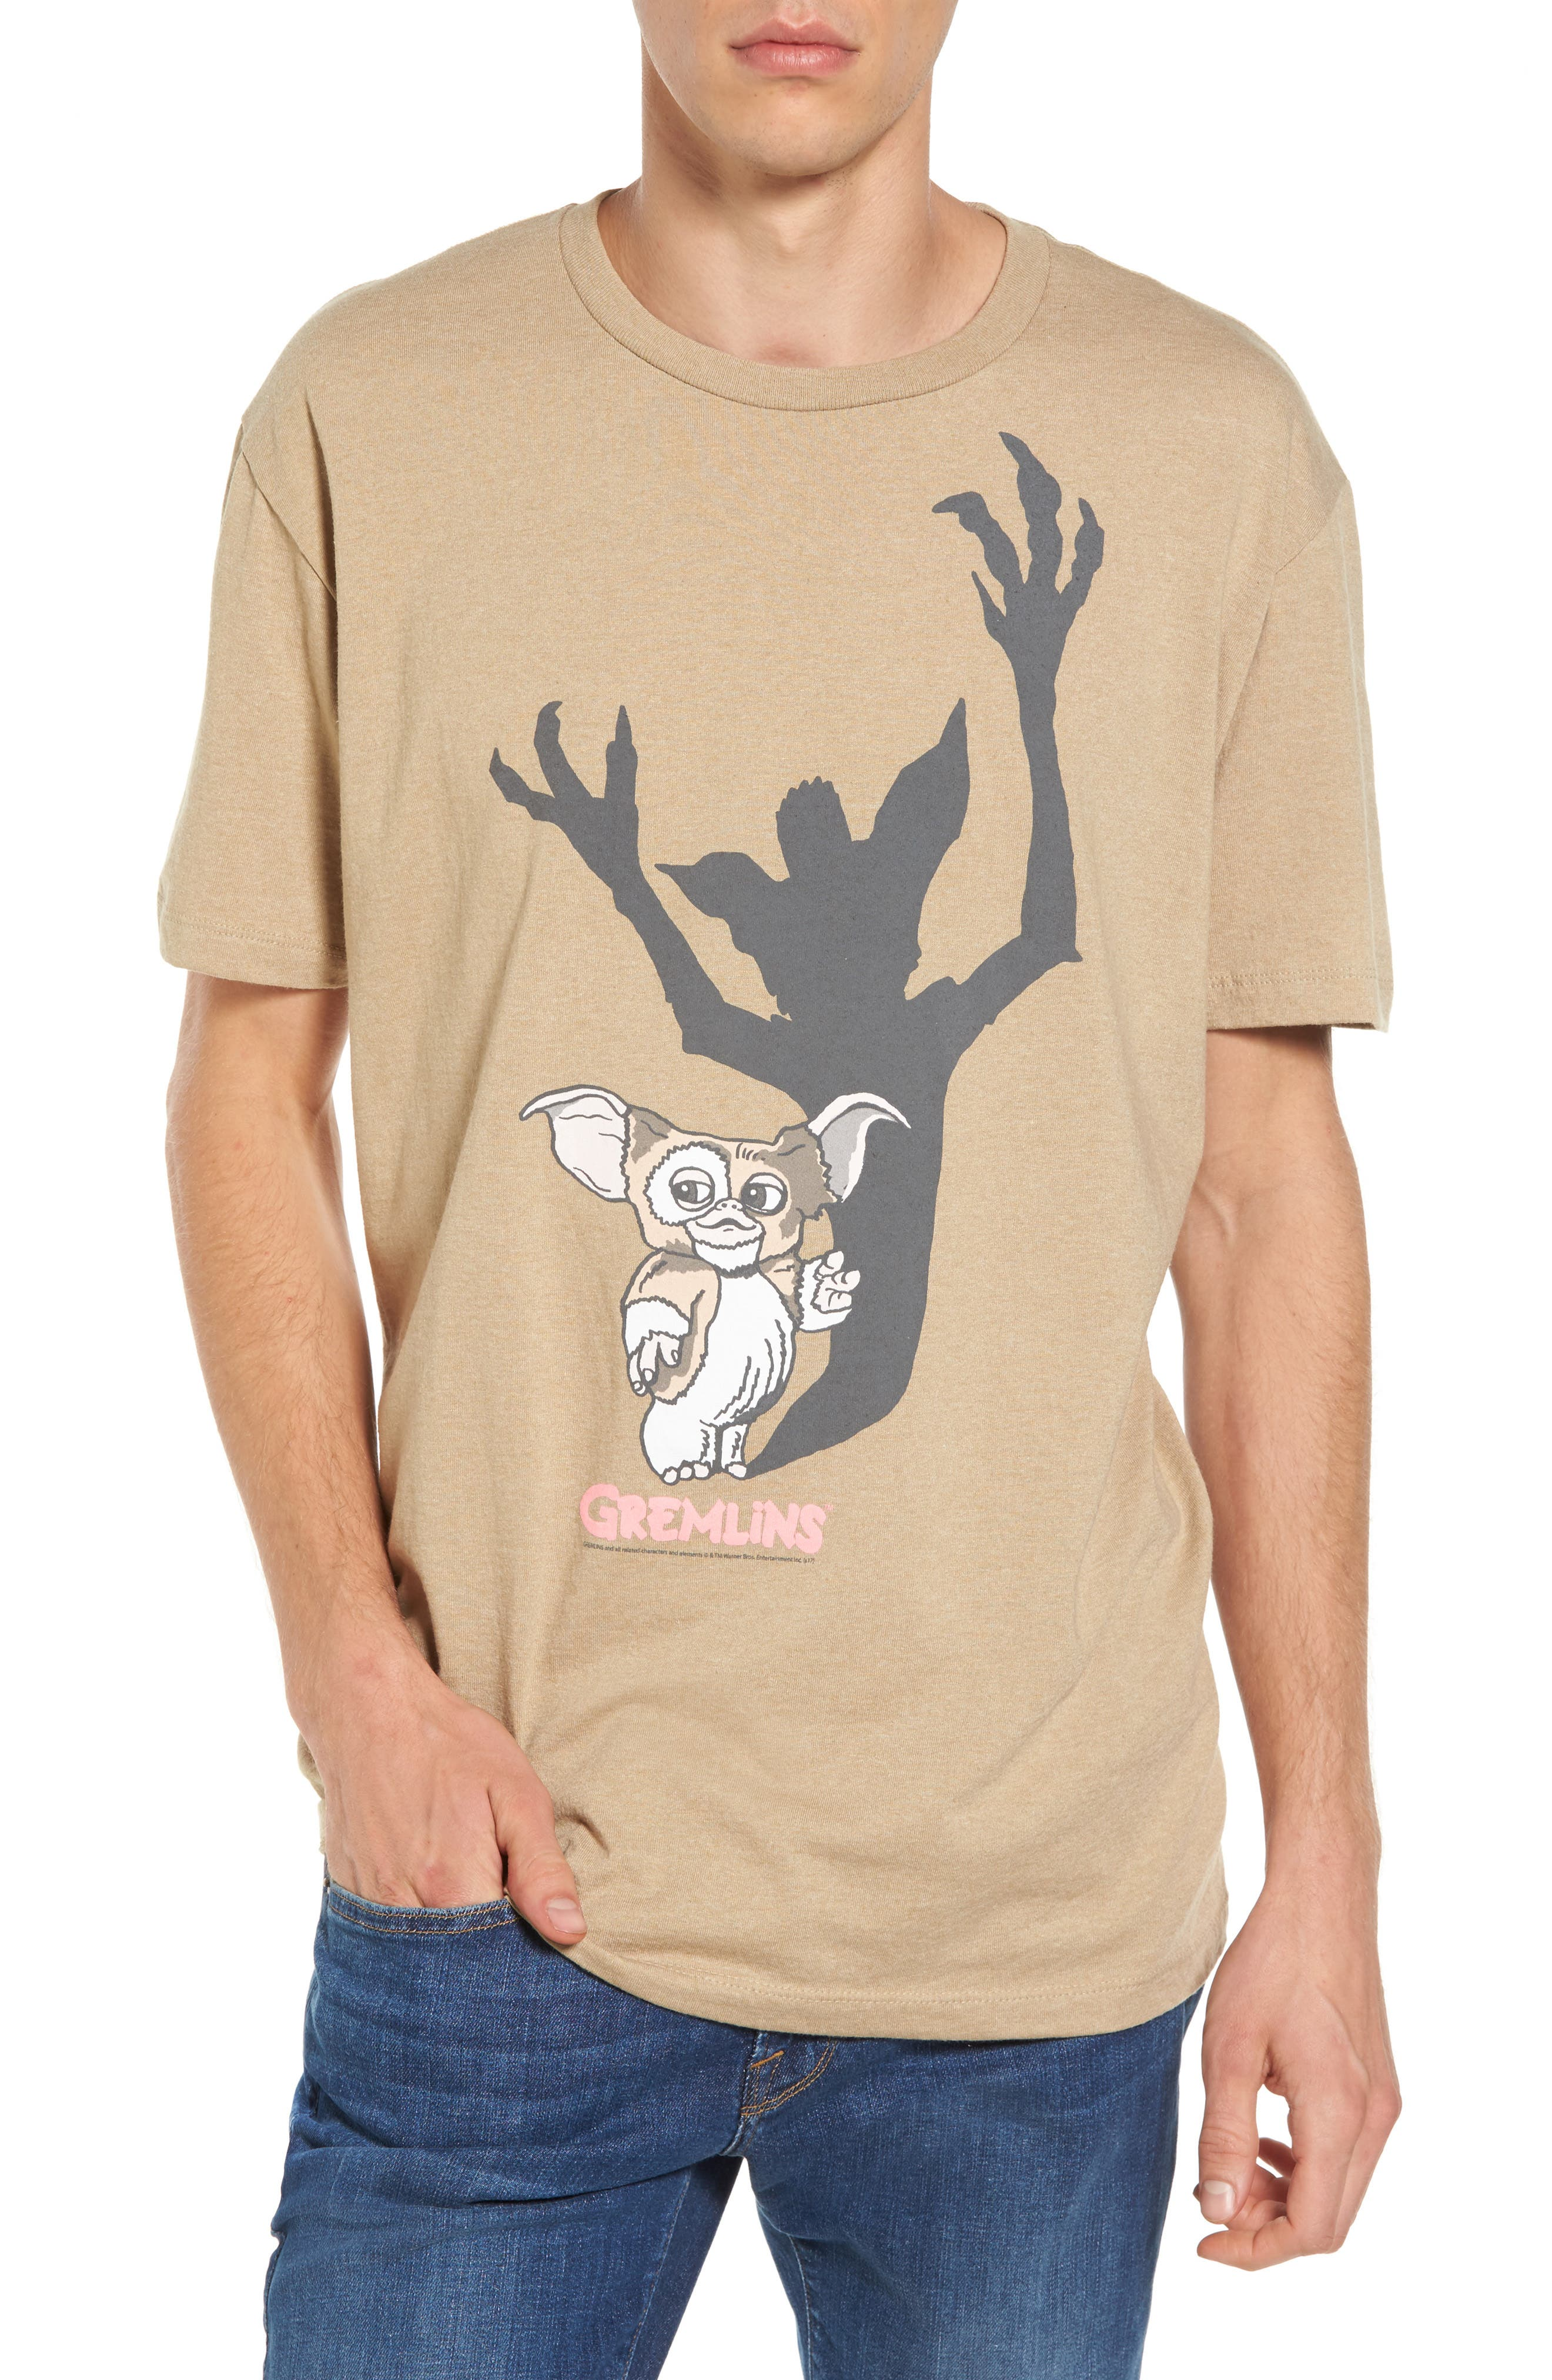 The Rail Gremlins Graphic T-Shirt